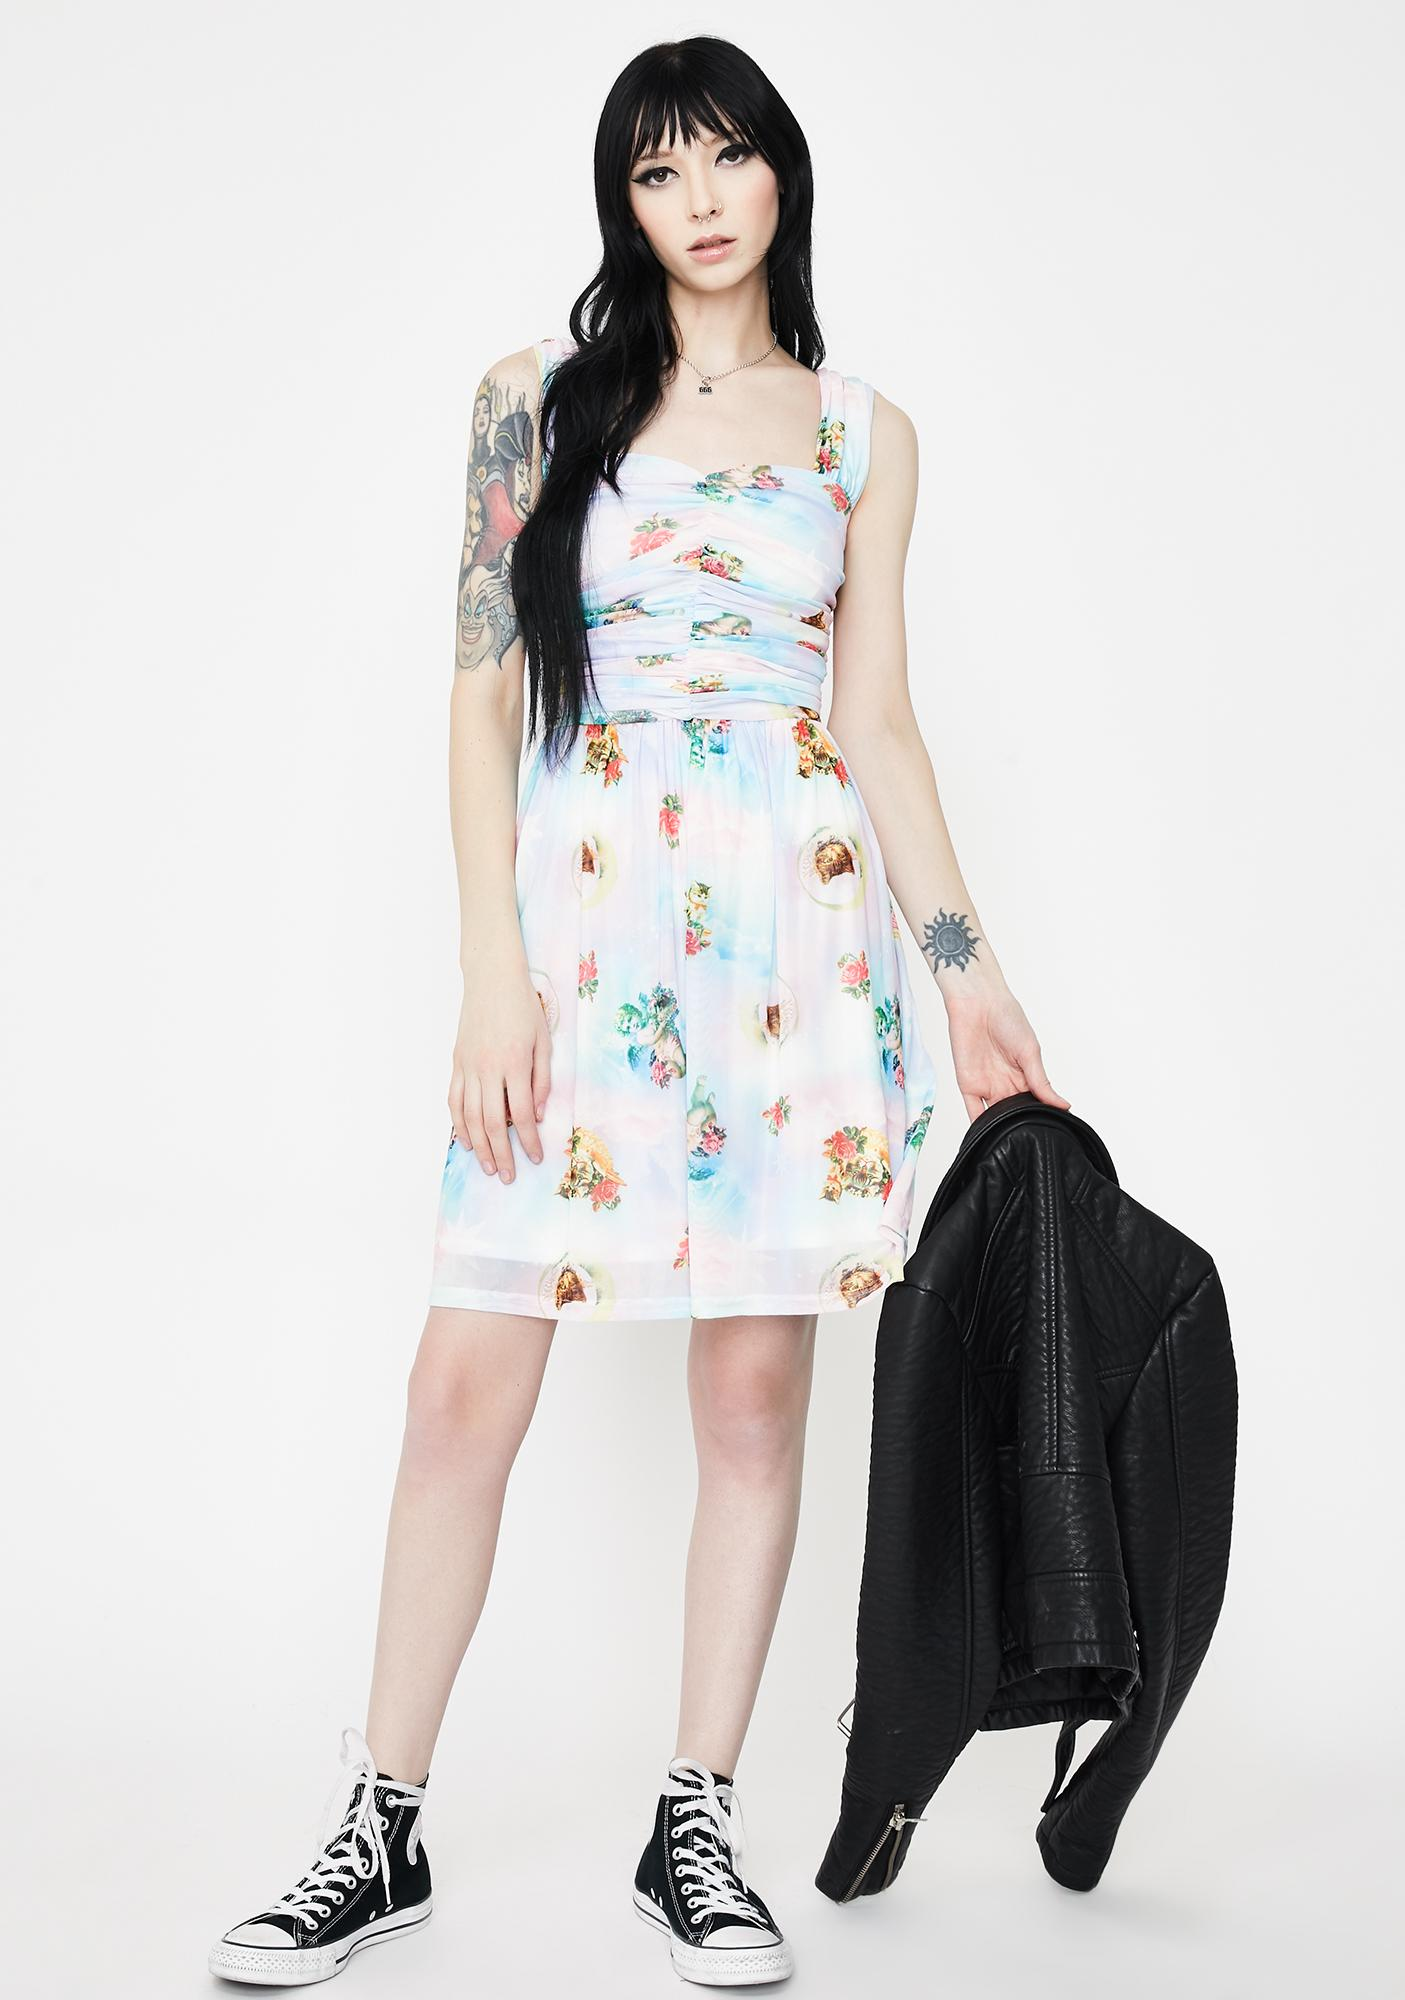 Jawbreaker Cherub Cat Chiffon Skater Dress